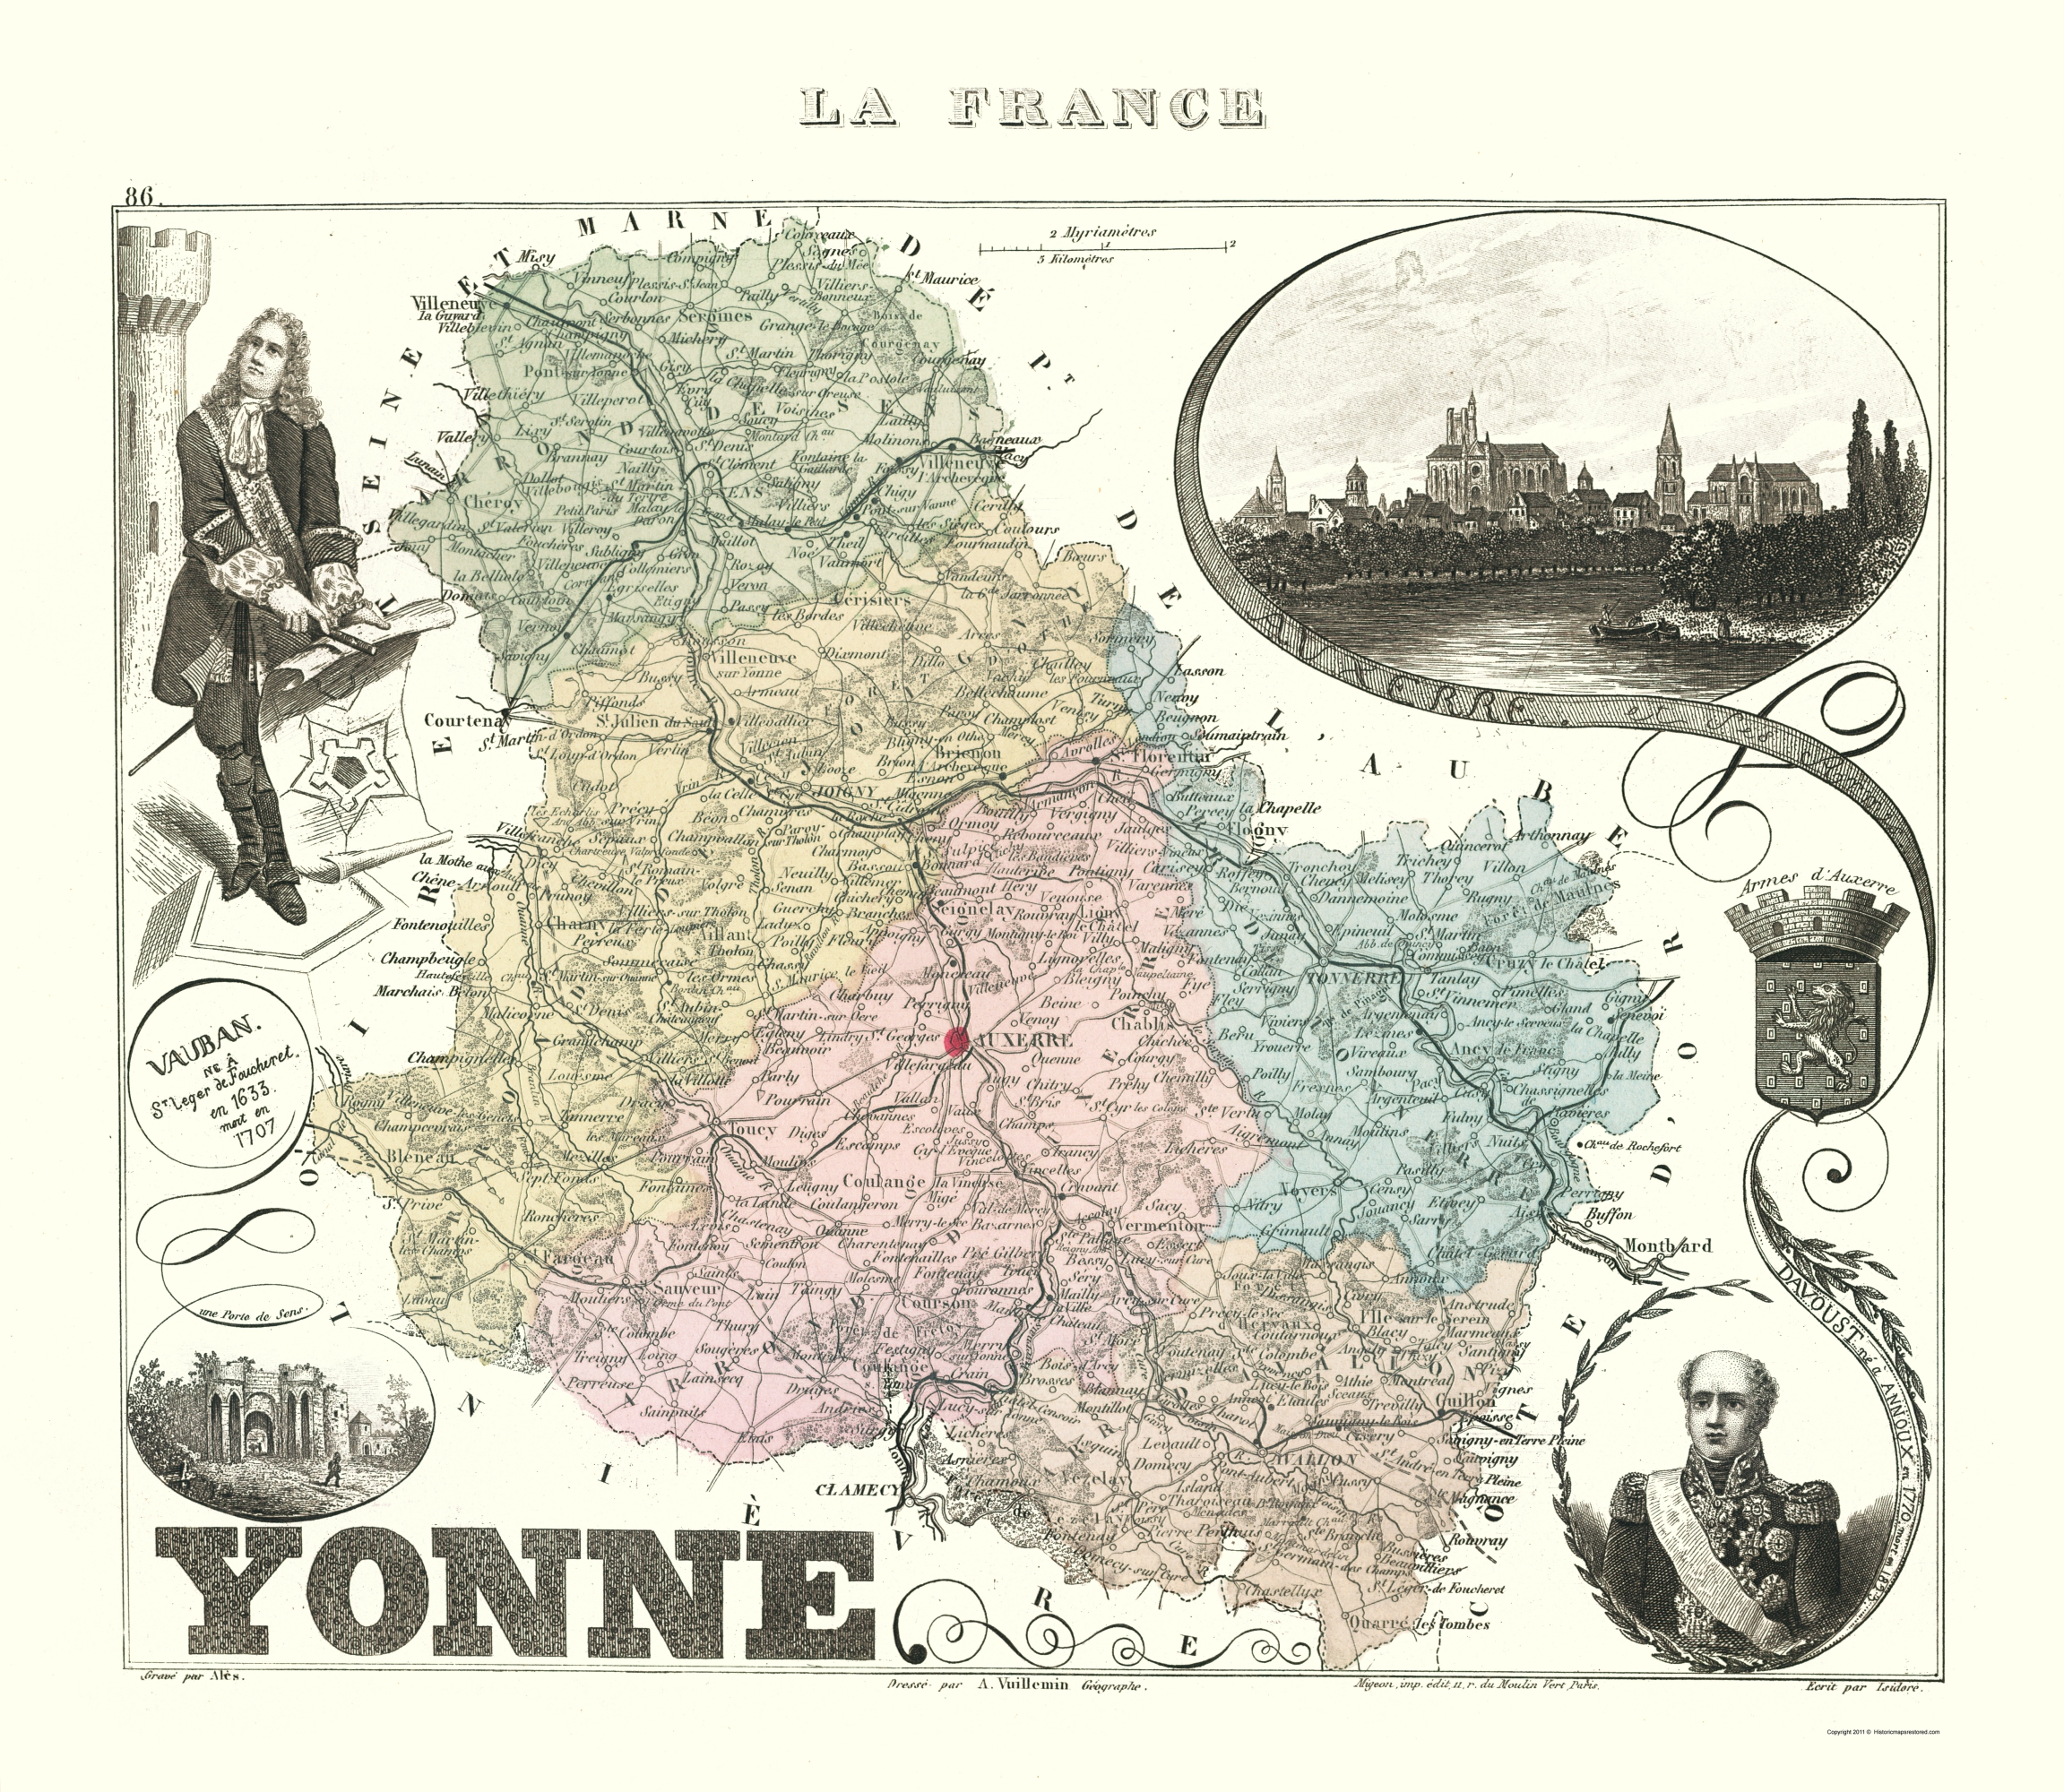 Map Of Yonne France.Old France Map Yonne Department Migeon 1869